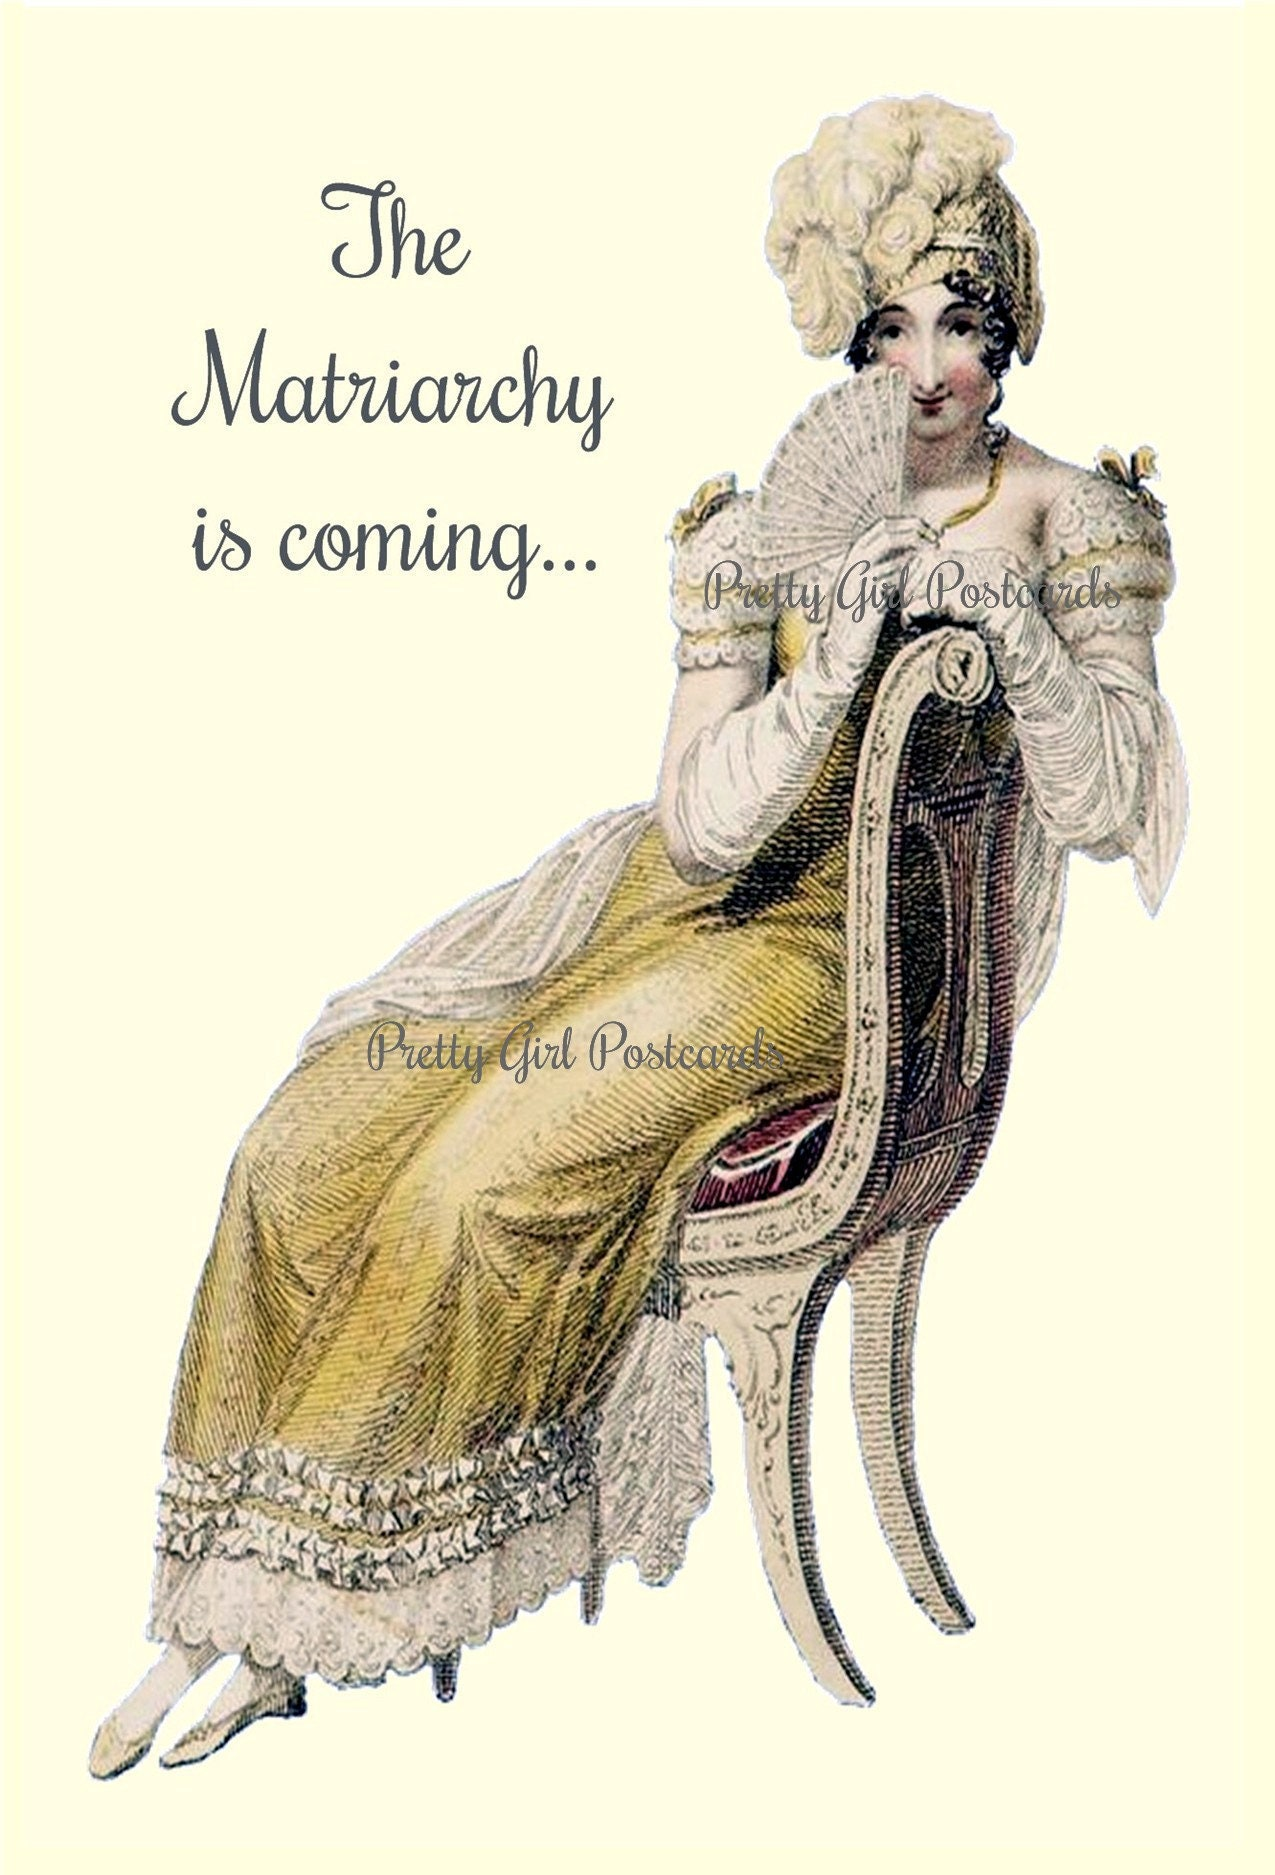 Marie Antoinette Postcard Witty Political Quote Greeting Card The